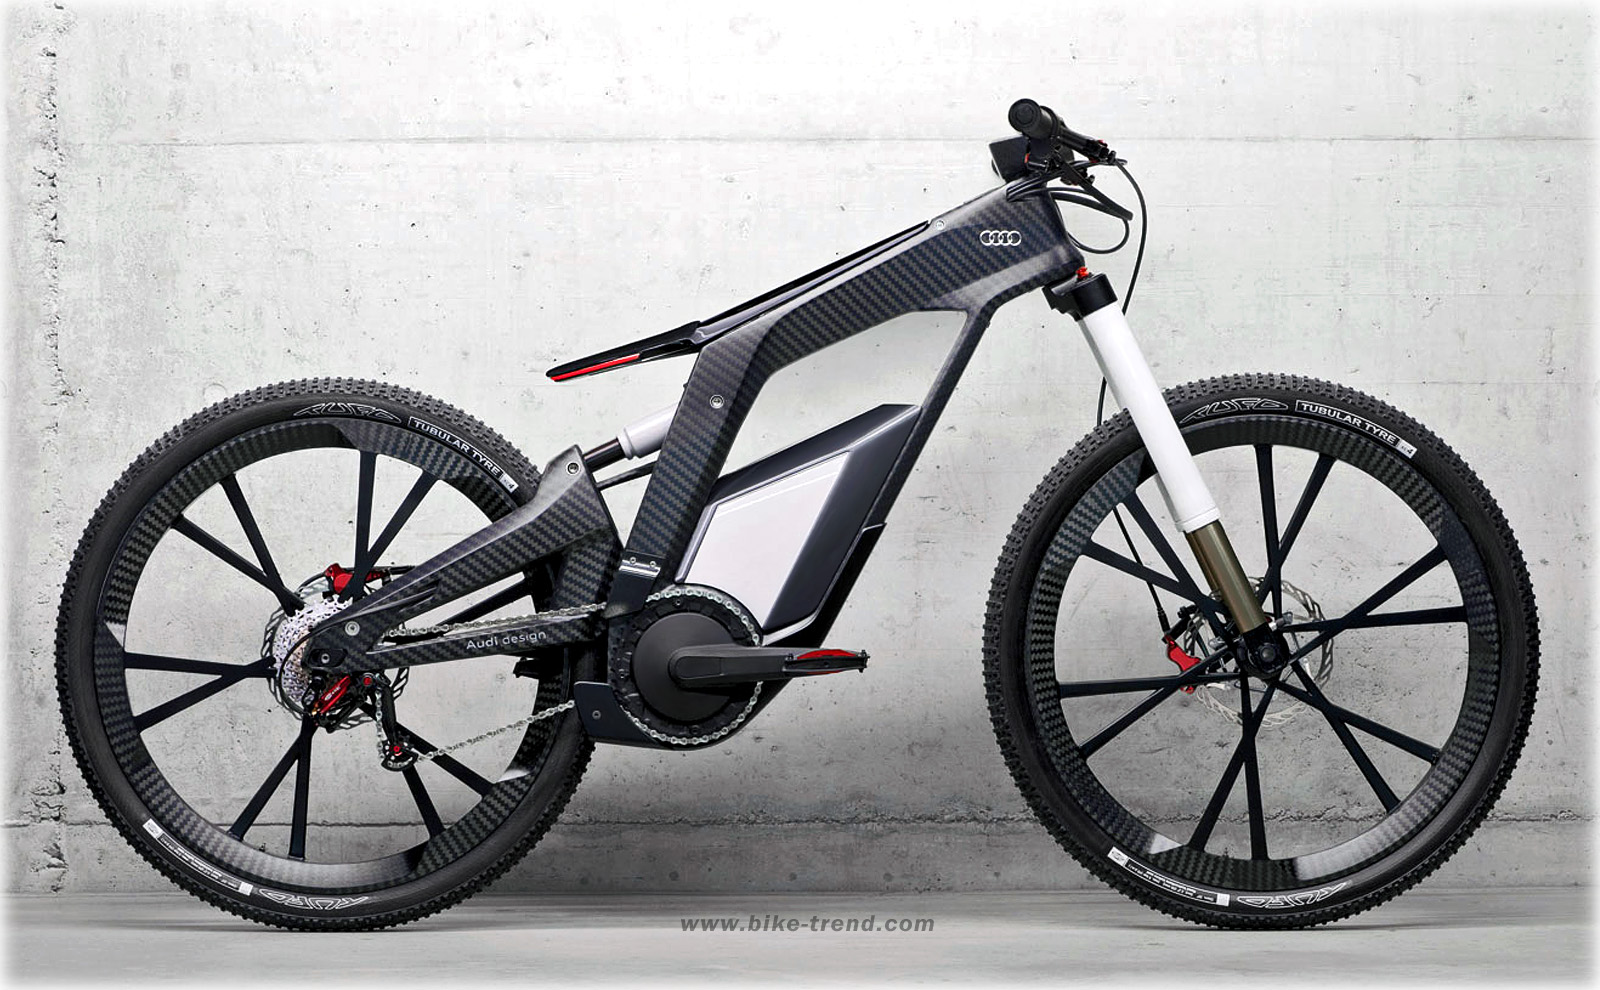 Audi E-Bike Concept (2012) electrical bicycle by Audi design